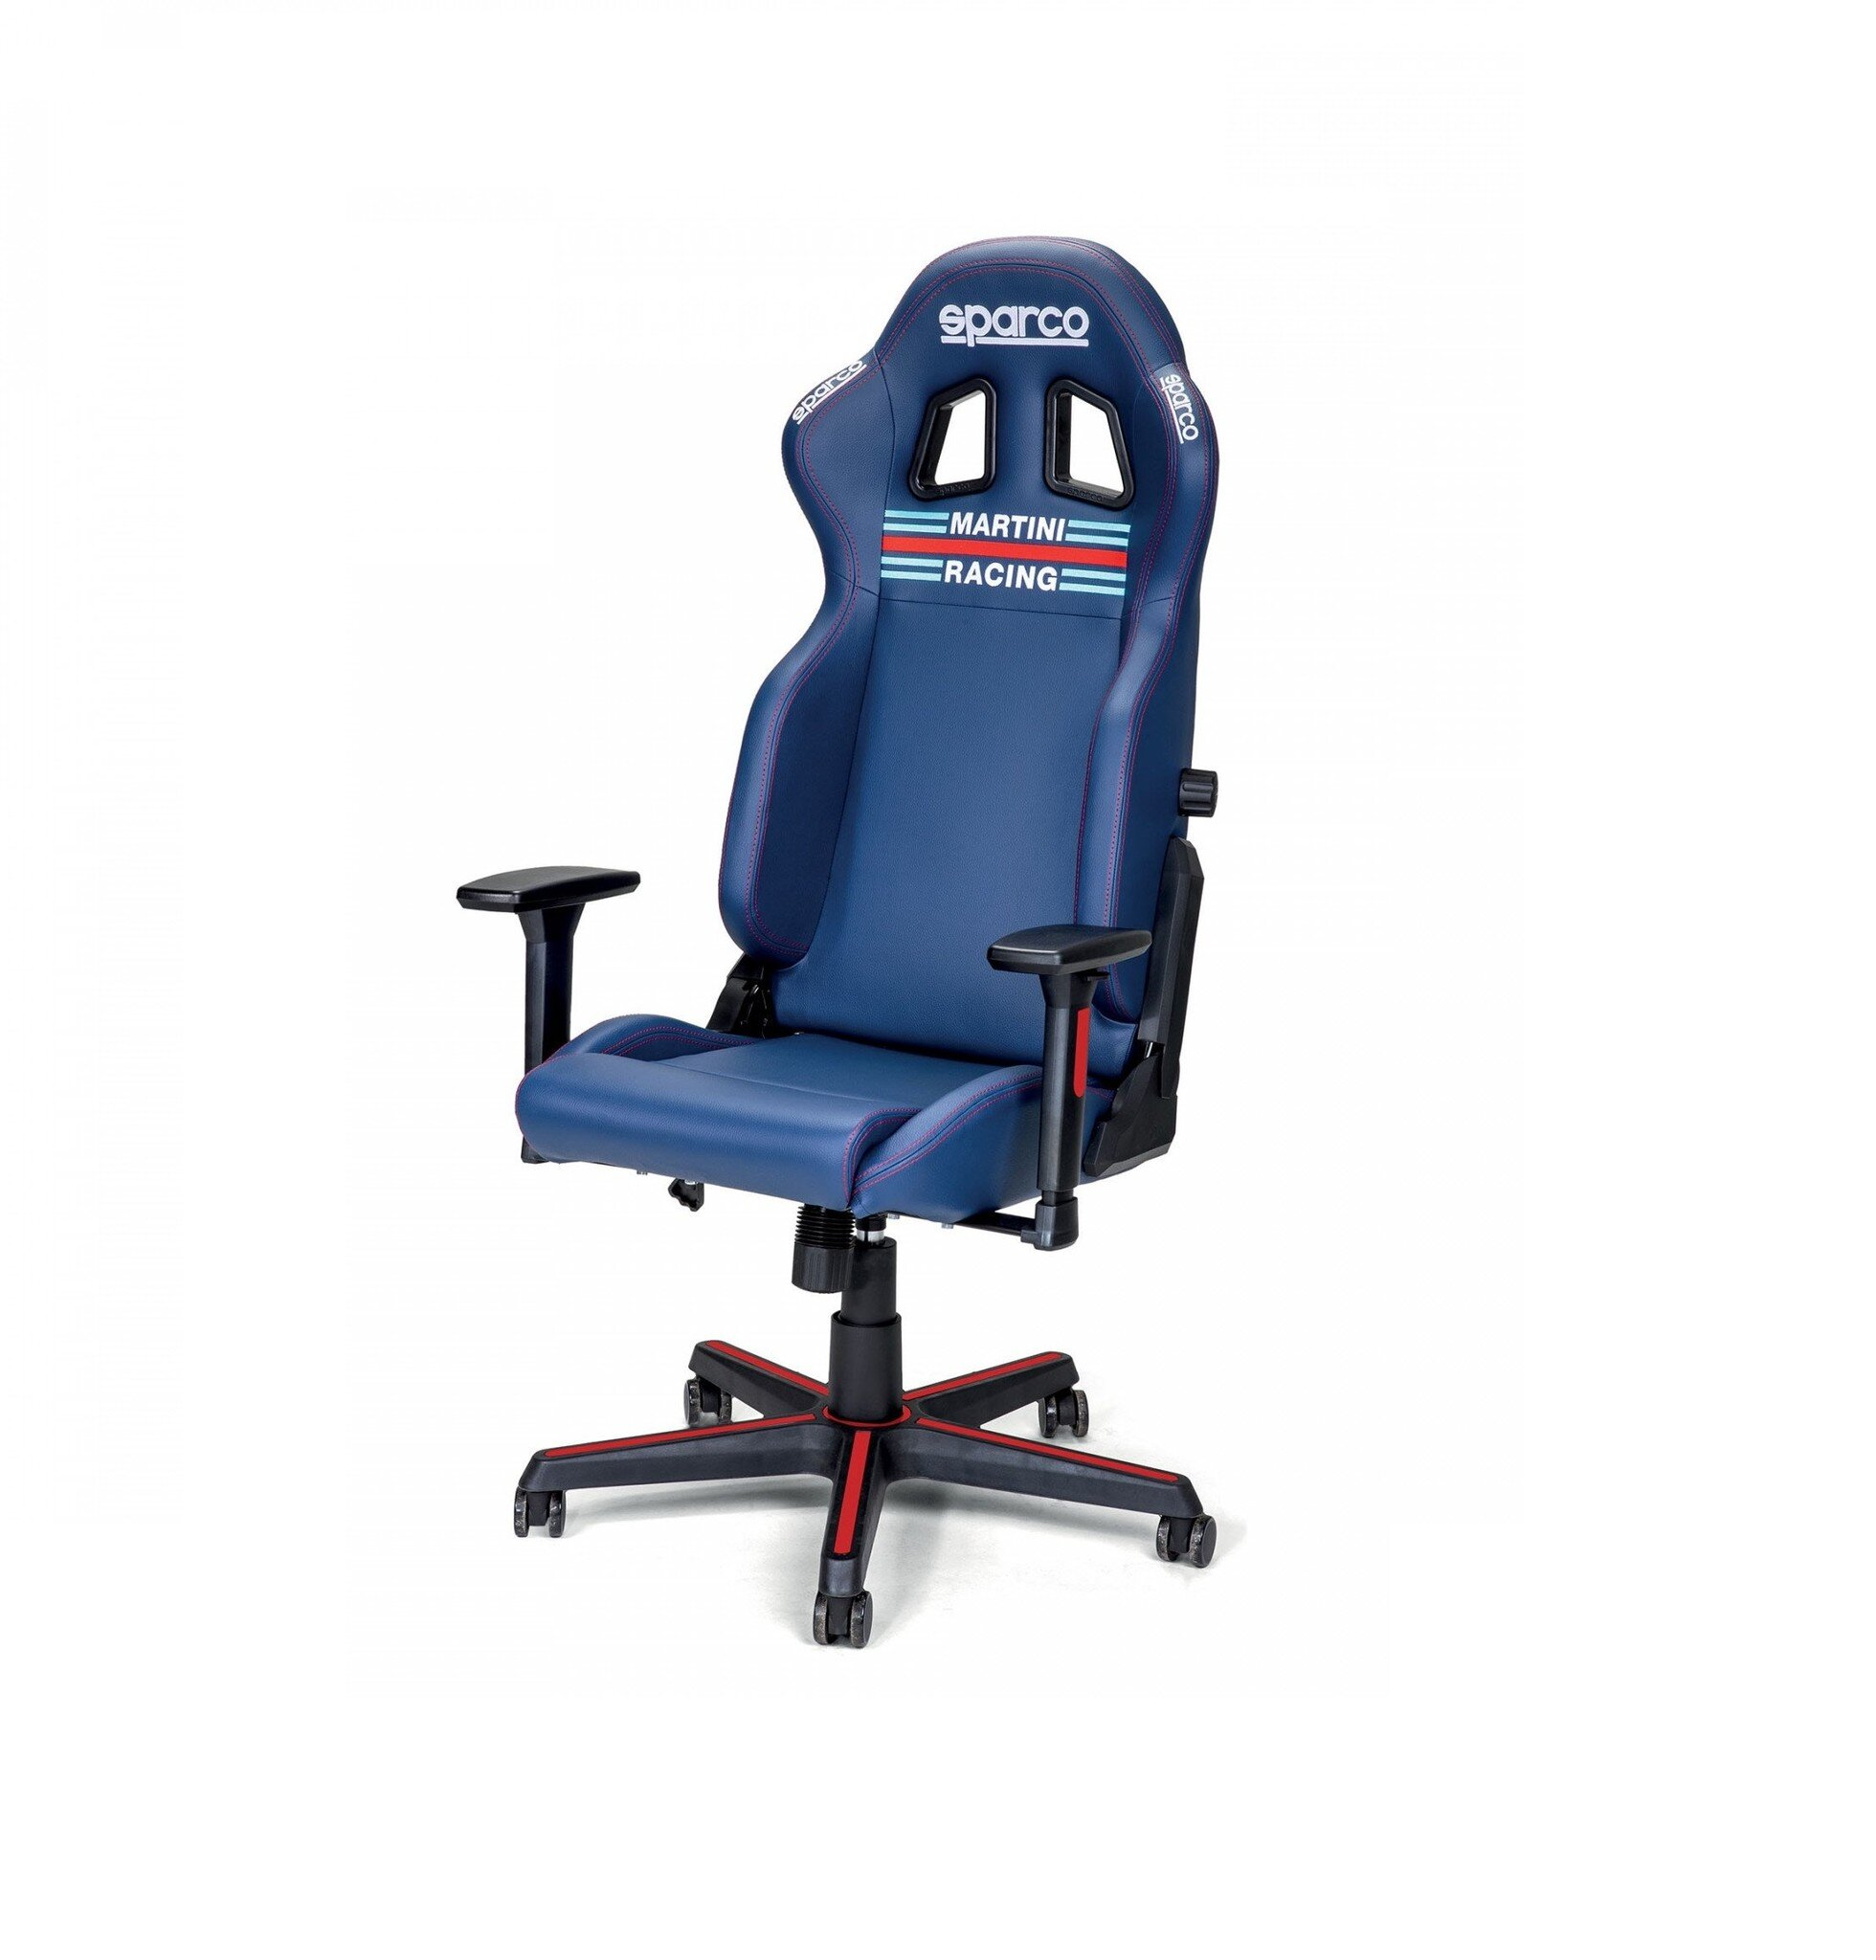 Sparco Icon Chair Martini Racing